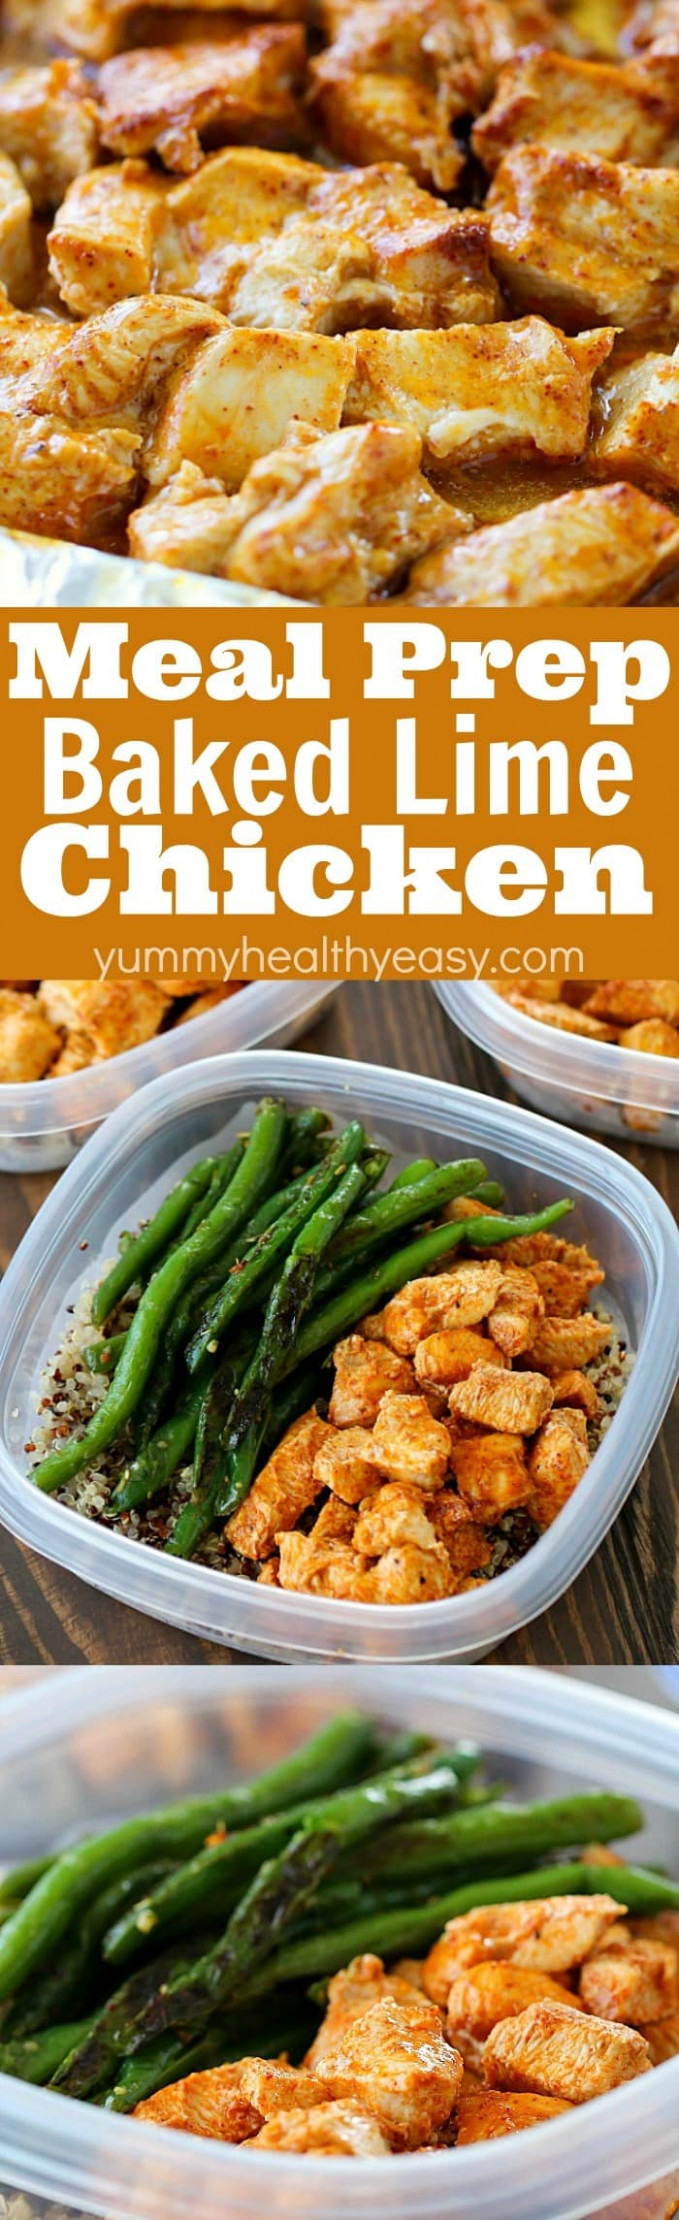 Meal Prep Baked Lime Chicken Bowls - dinner recipes you can prepare in advance